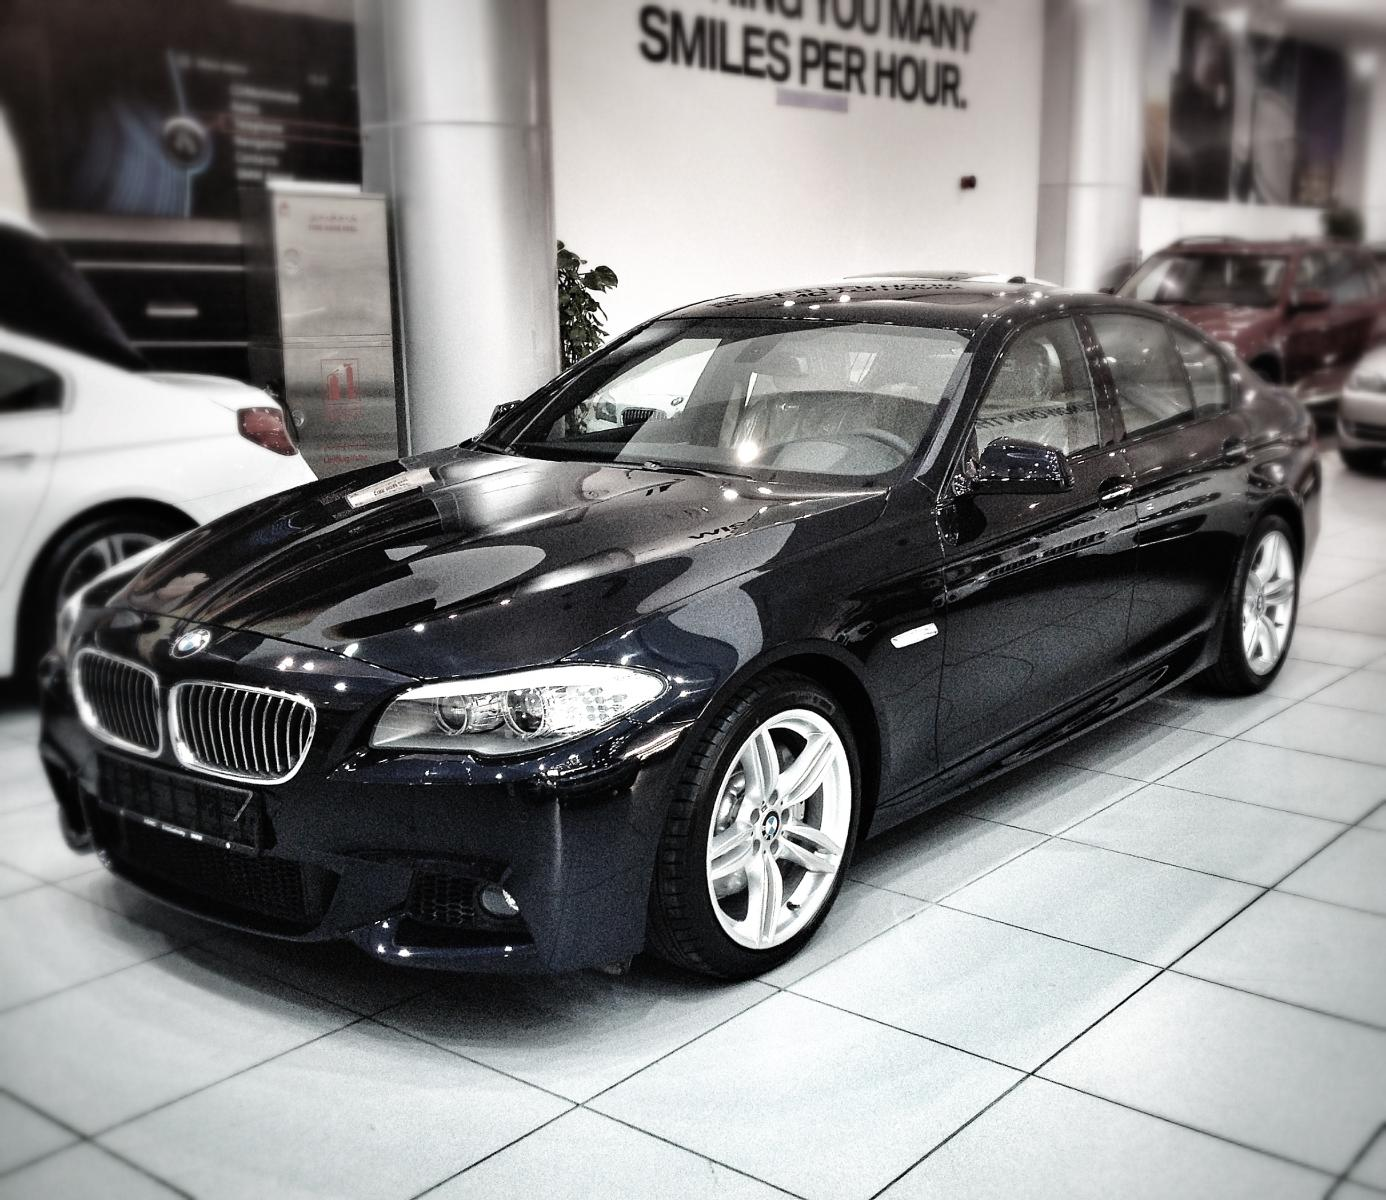 2012 Bmw F10 M5 Saloon Uk: My Carbon Black 535i M-Sport